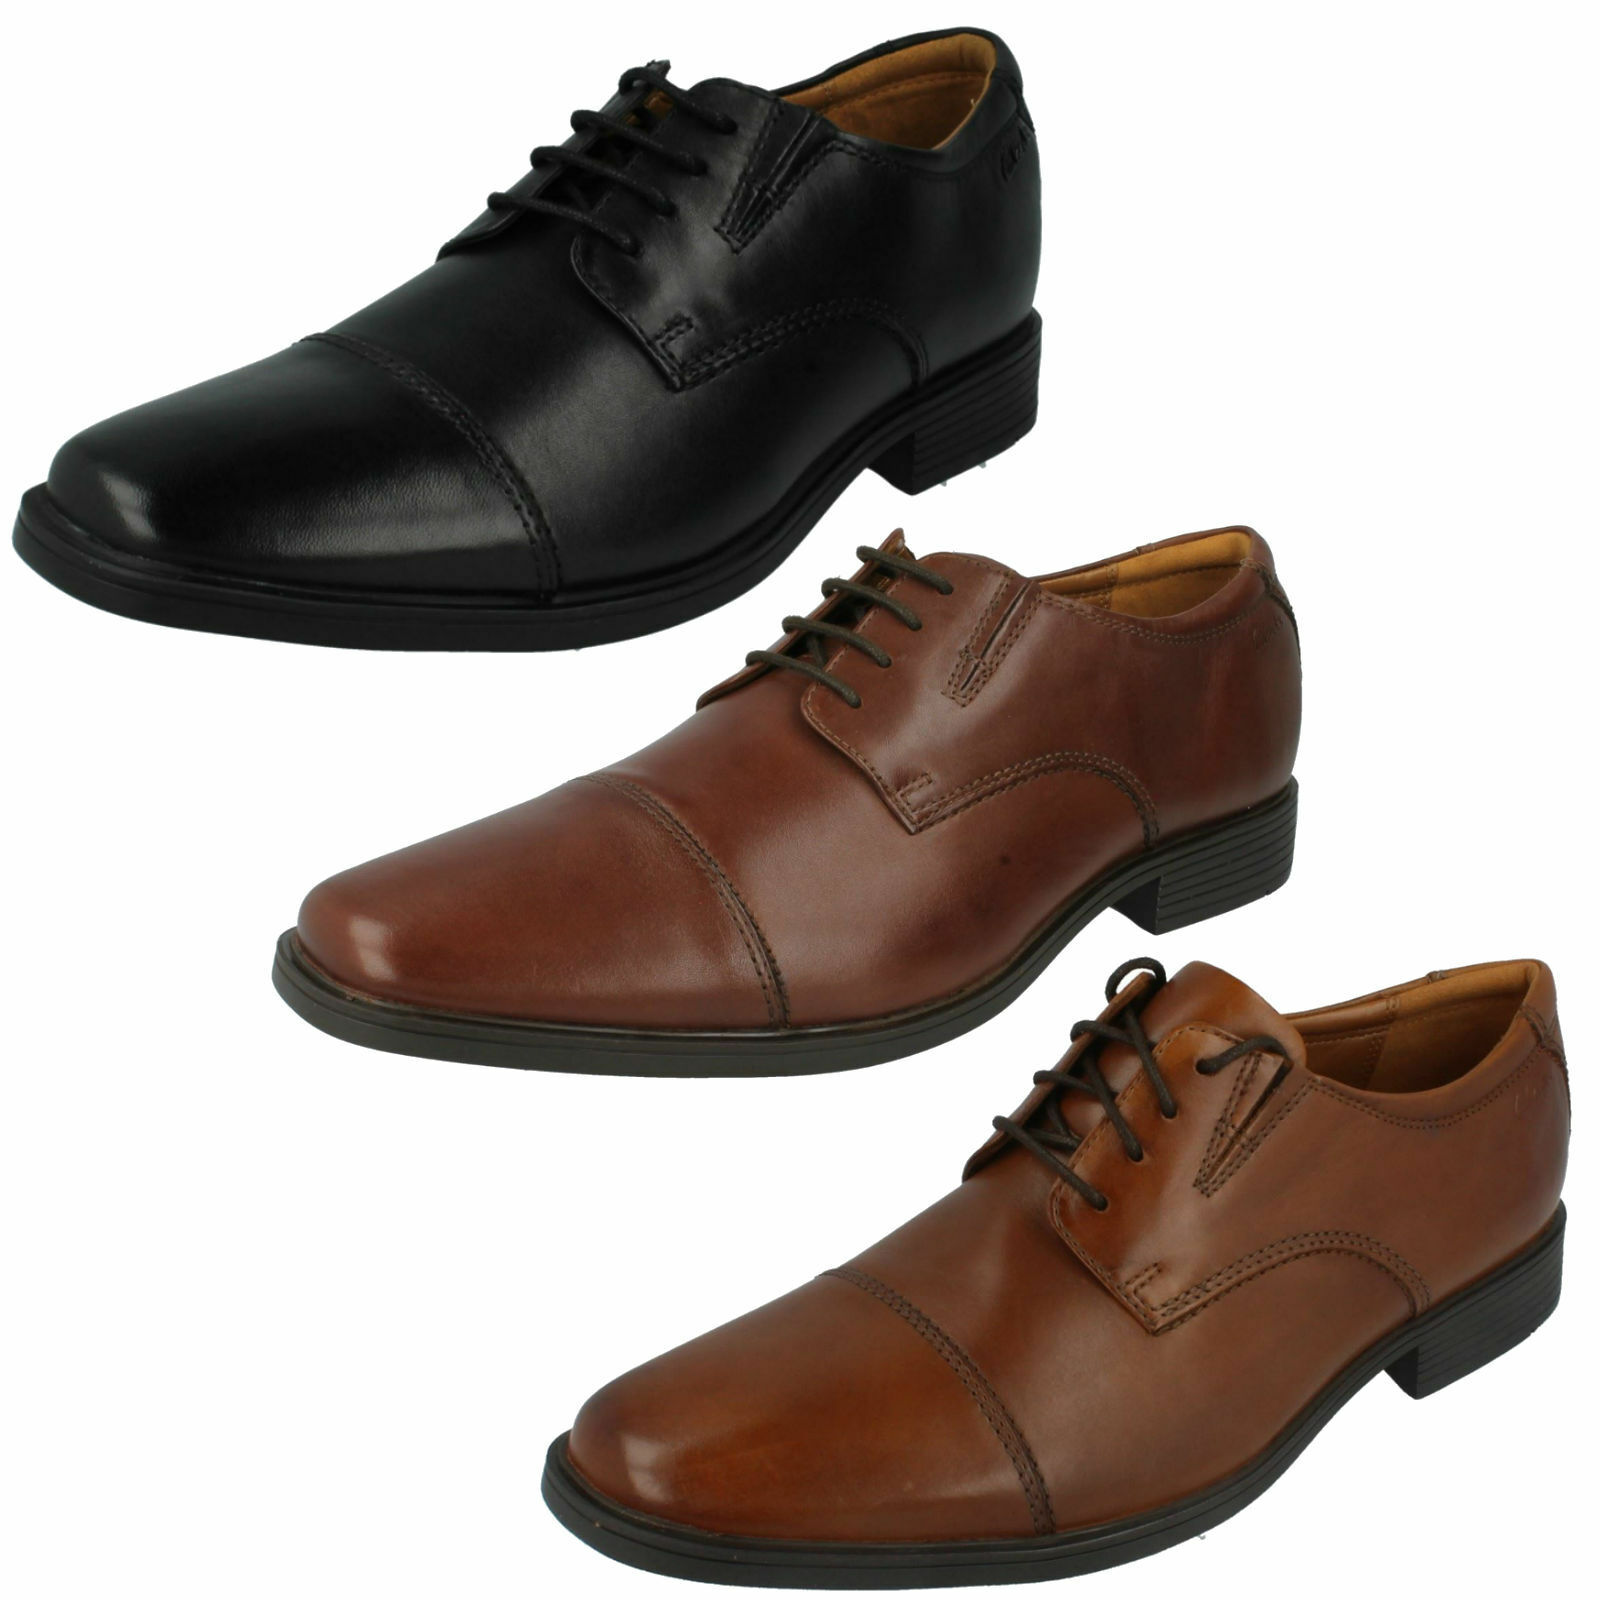 Men's Clarks Formal Leather shoes - Tilden Cap